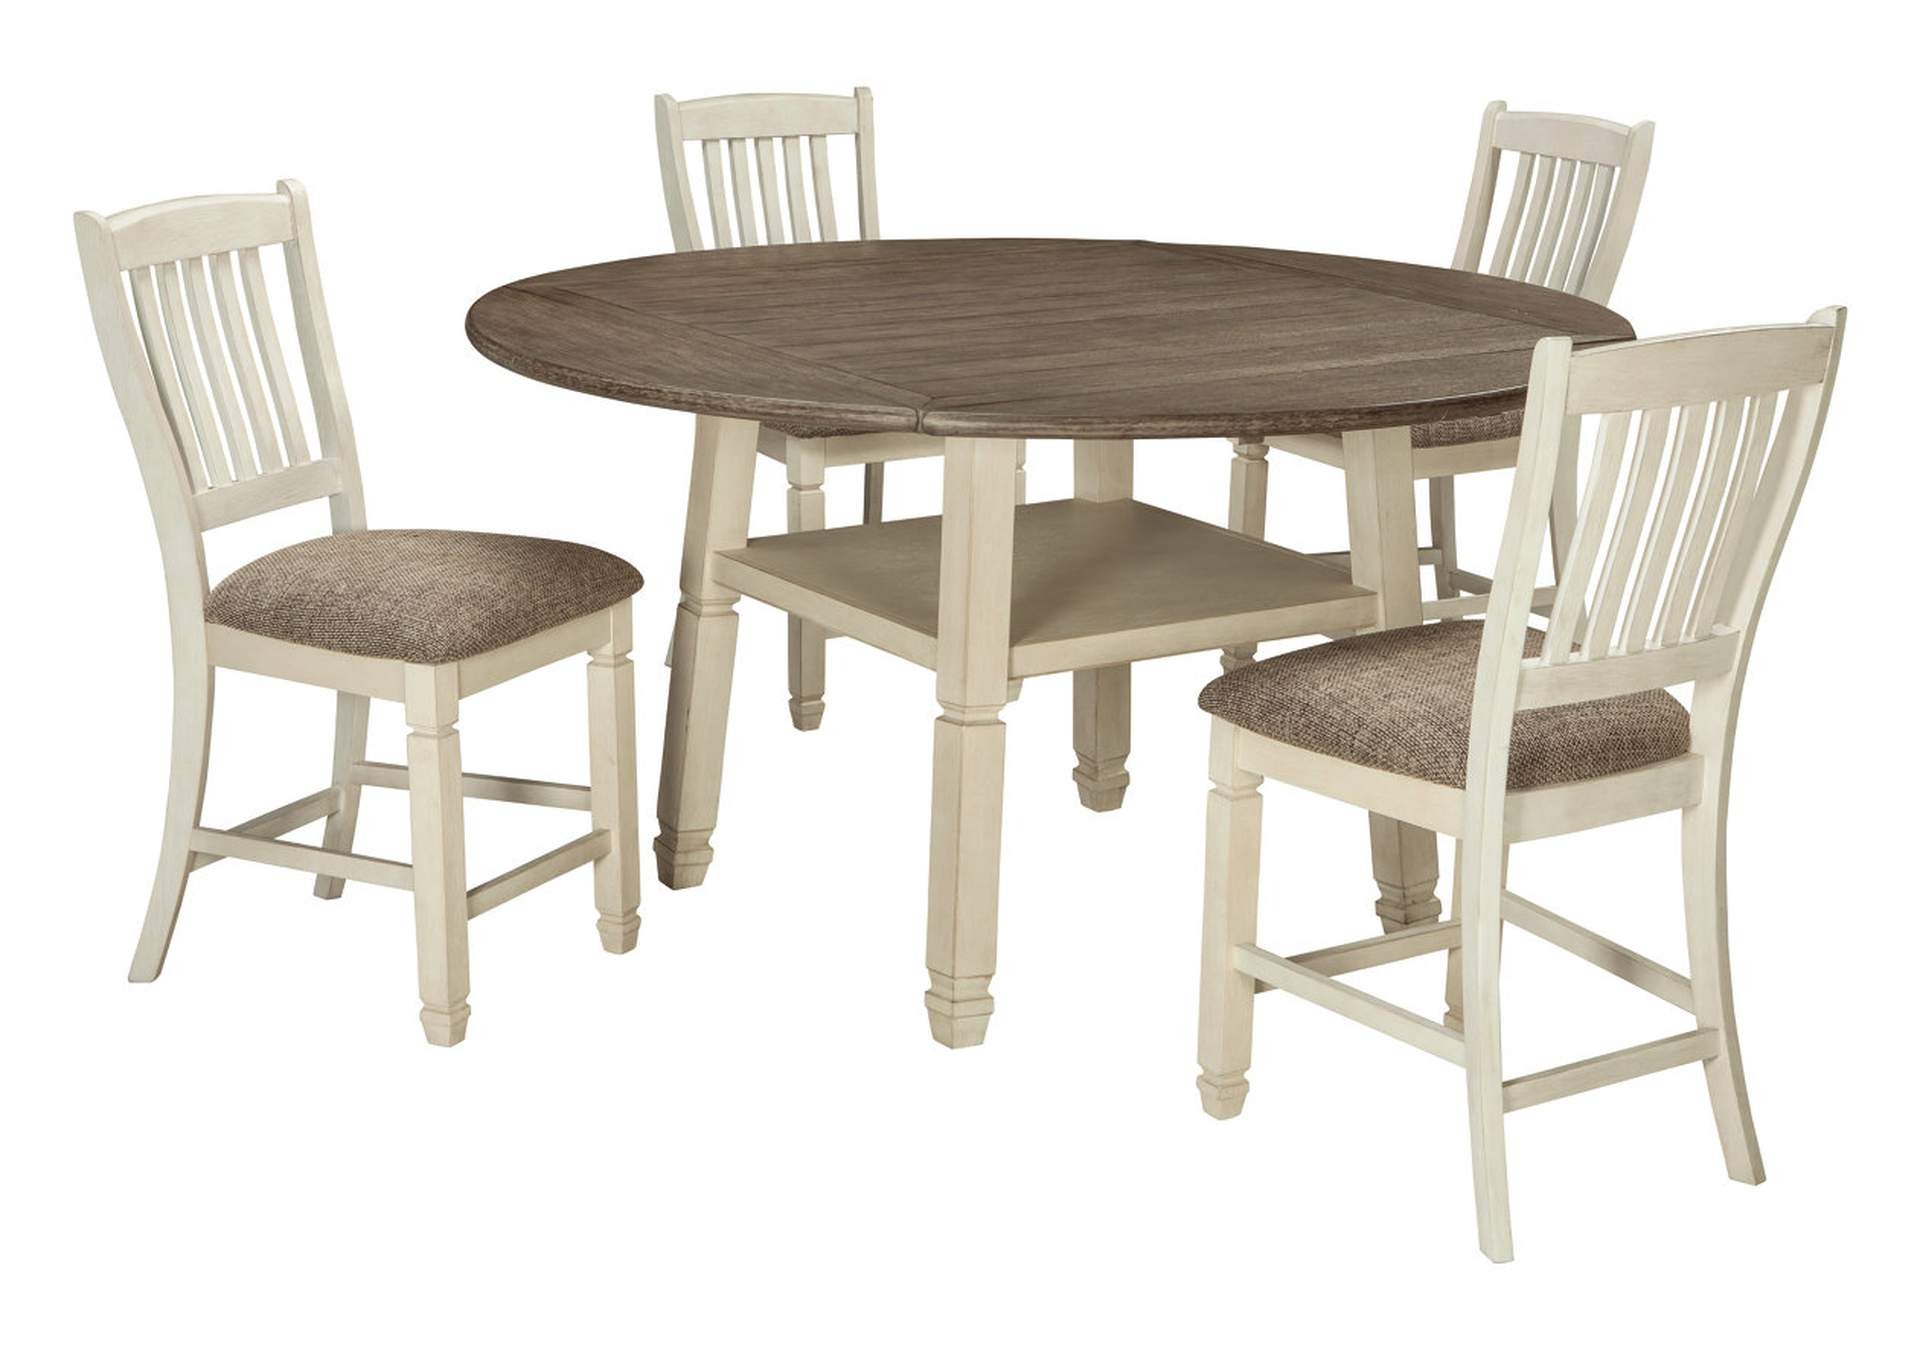 Bolanburg Counter Height Dining Room Drop Leaf Table and 4 Bar Stools